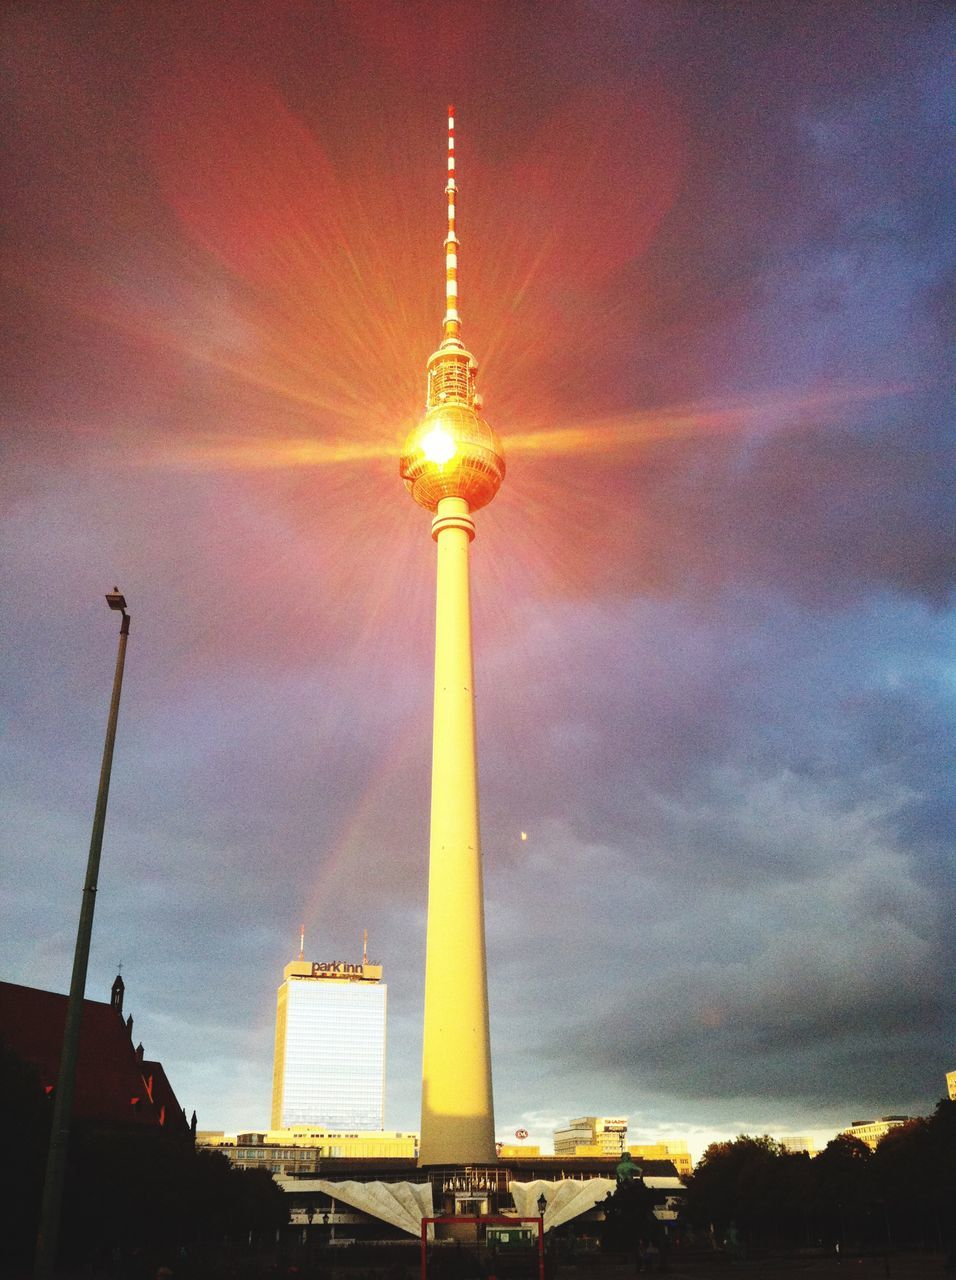 LOW ANGLE VIEW OF FERNSEHTURM TOWER AGAINST CLOUDY SKY